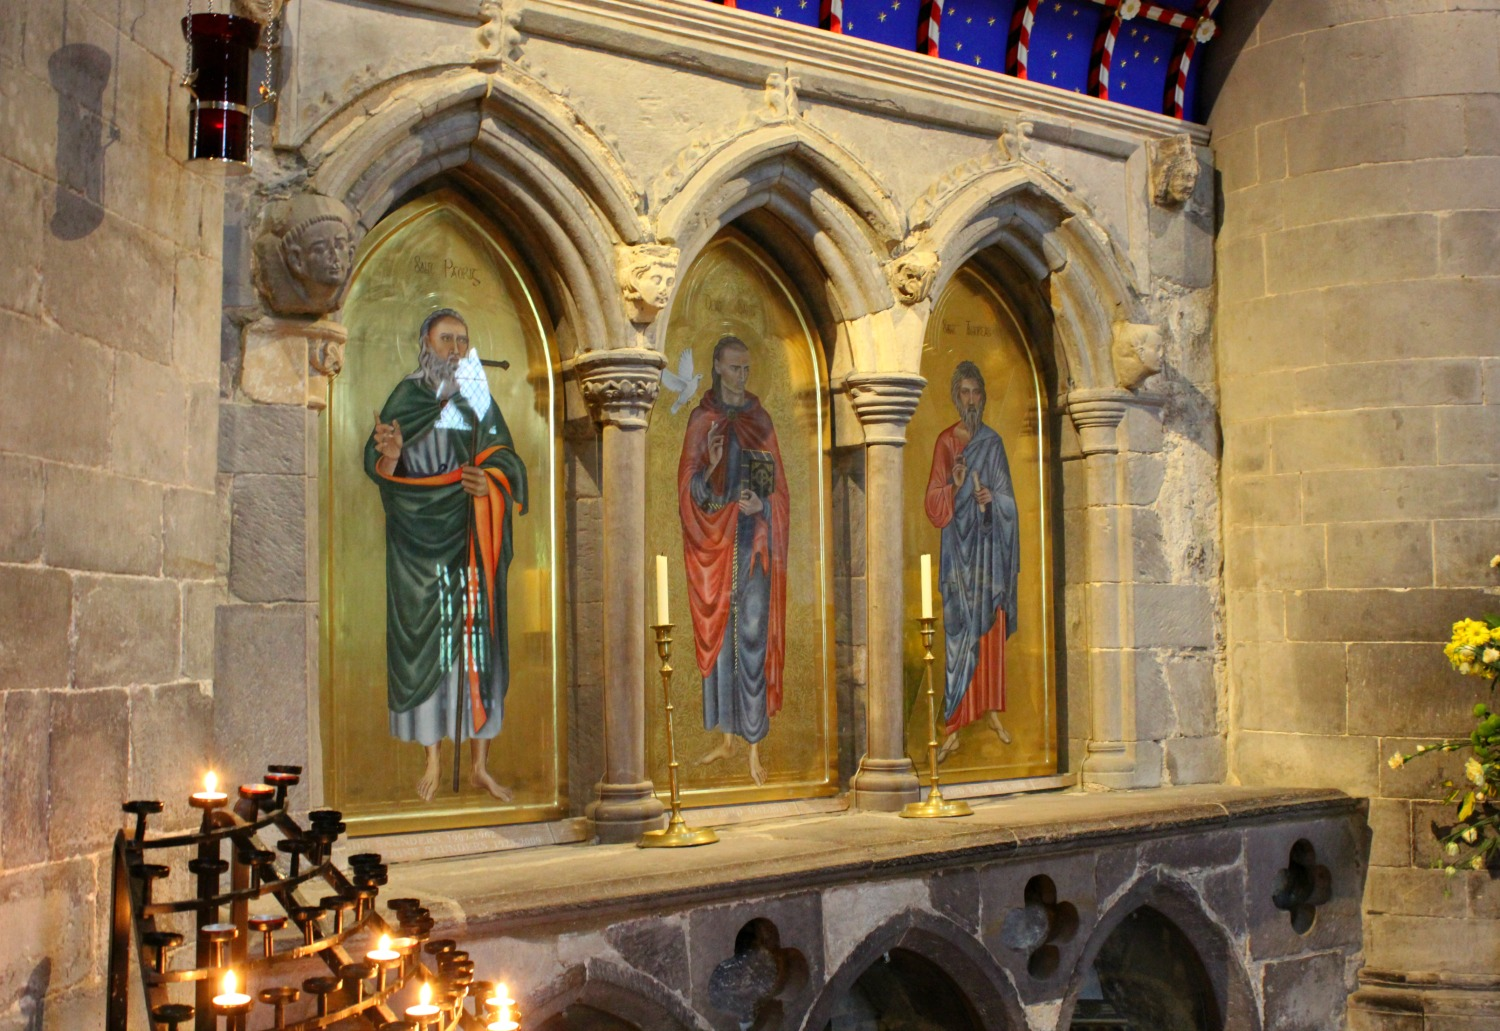 The shrine to St David in the cathedral at St Davids, Wales - on our journey to discover Welsh legends